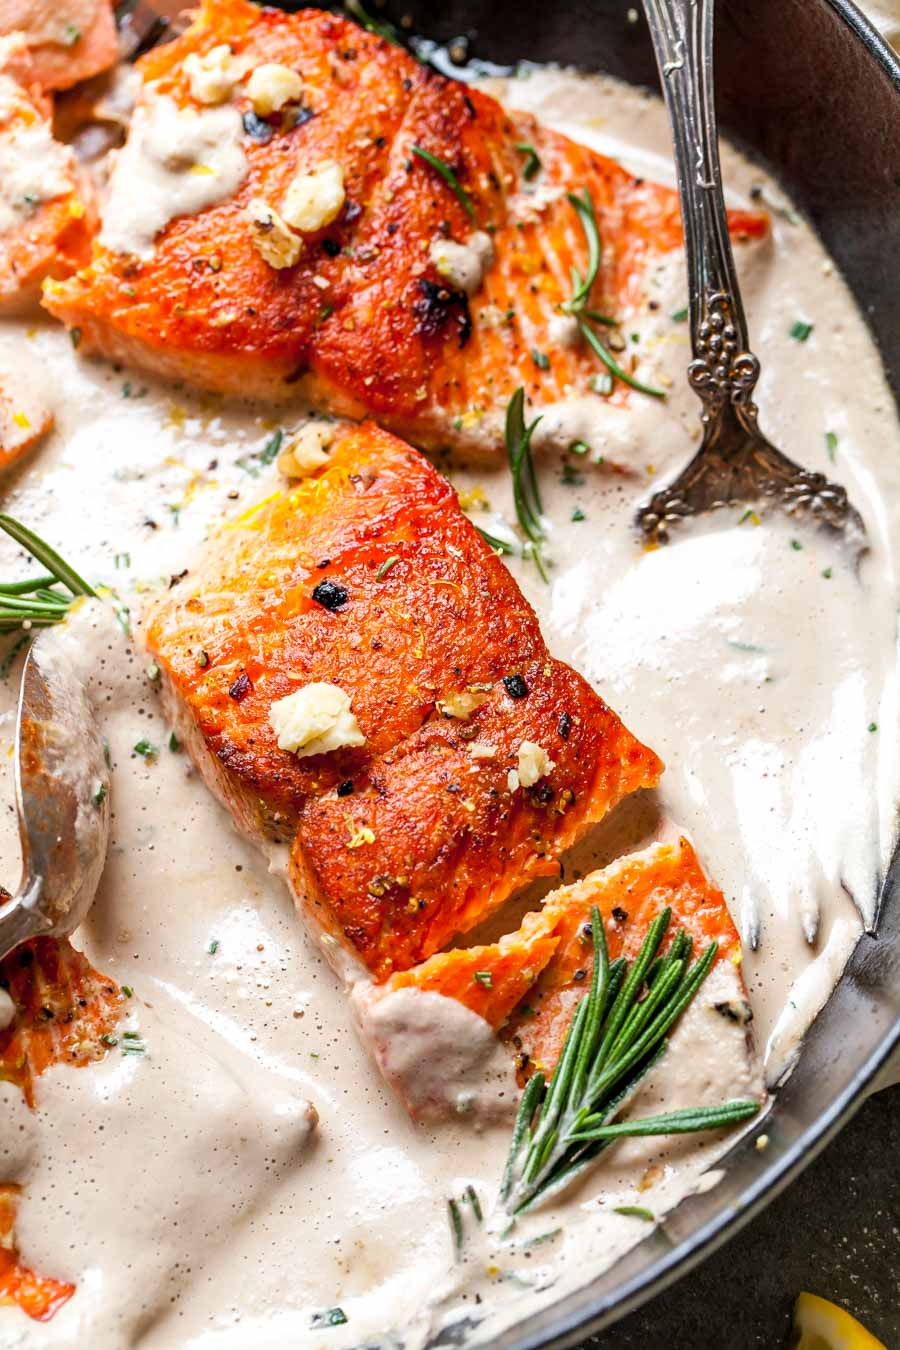 Crispy Salmon Fillets with Creamy Rosemary Sauce